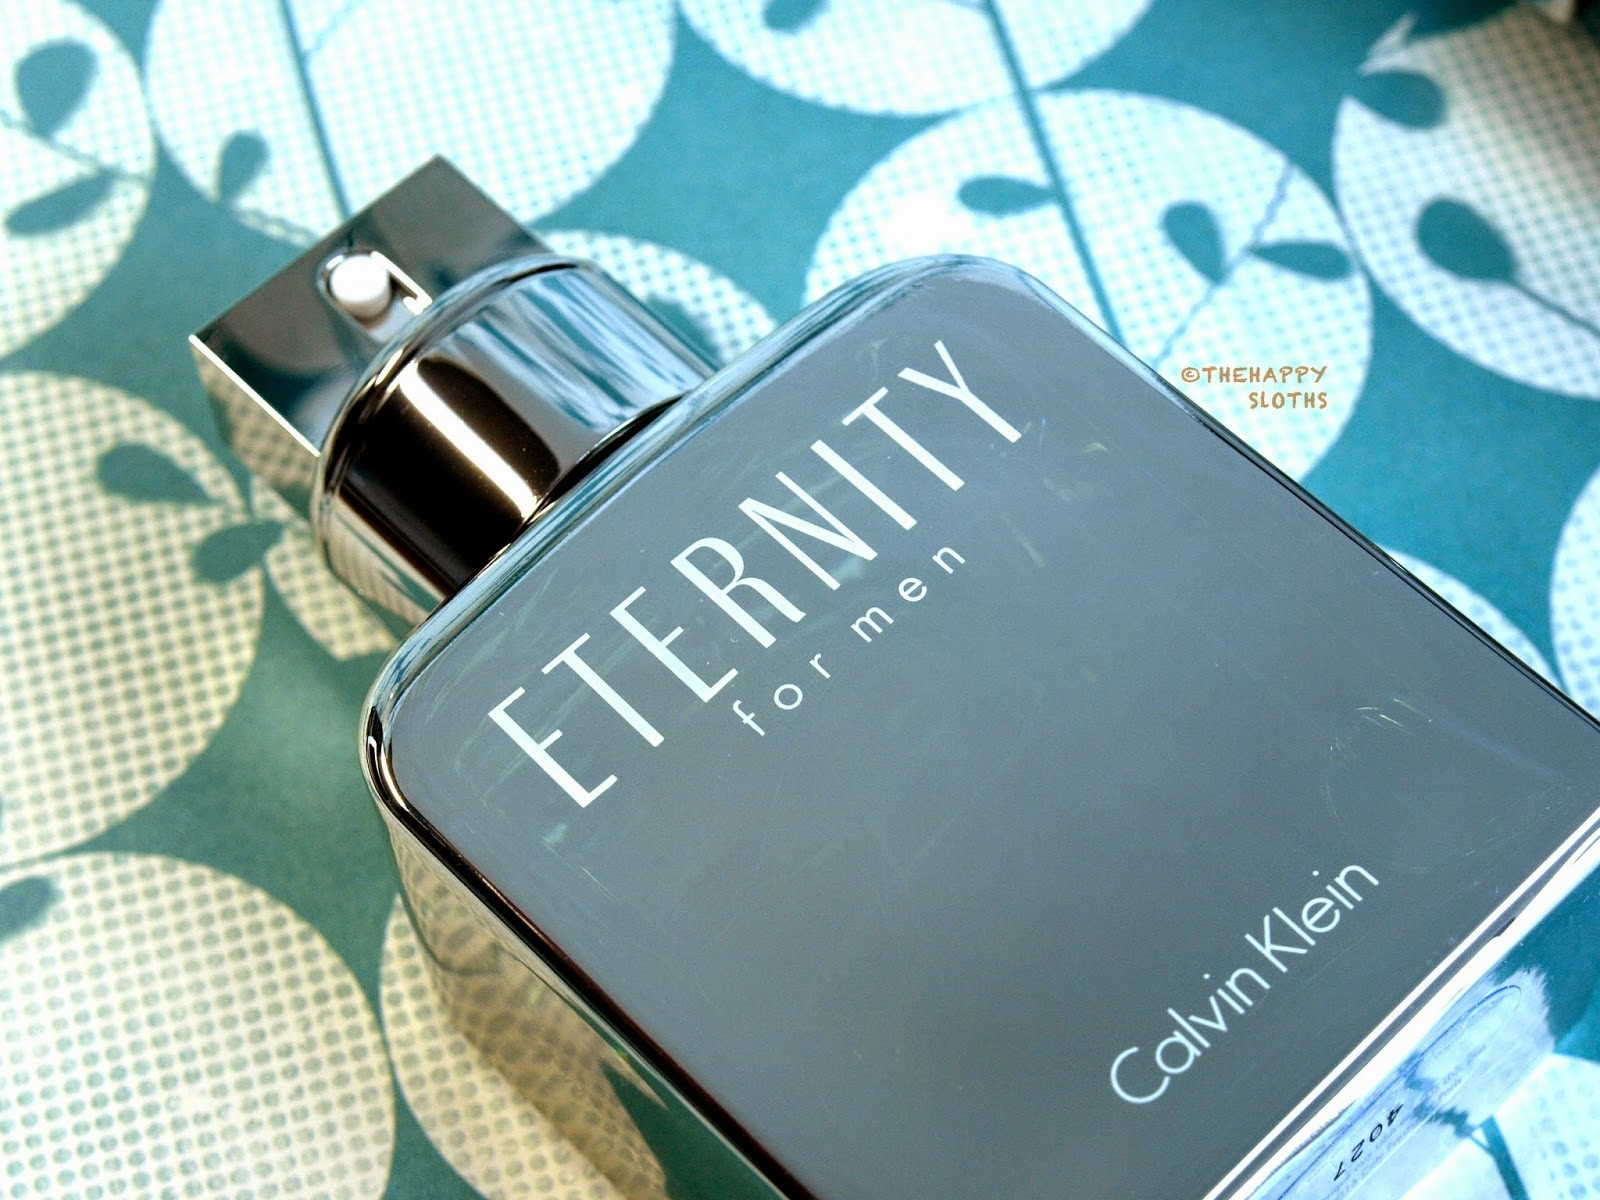 Изображение 3 Eternity 25th Anniversary Edition for Men edt Calvin Klein